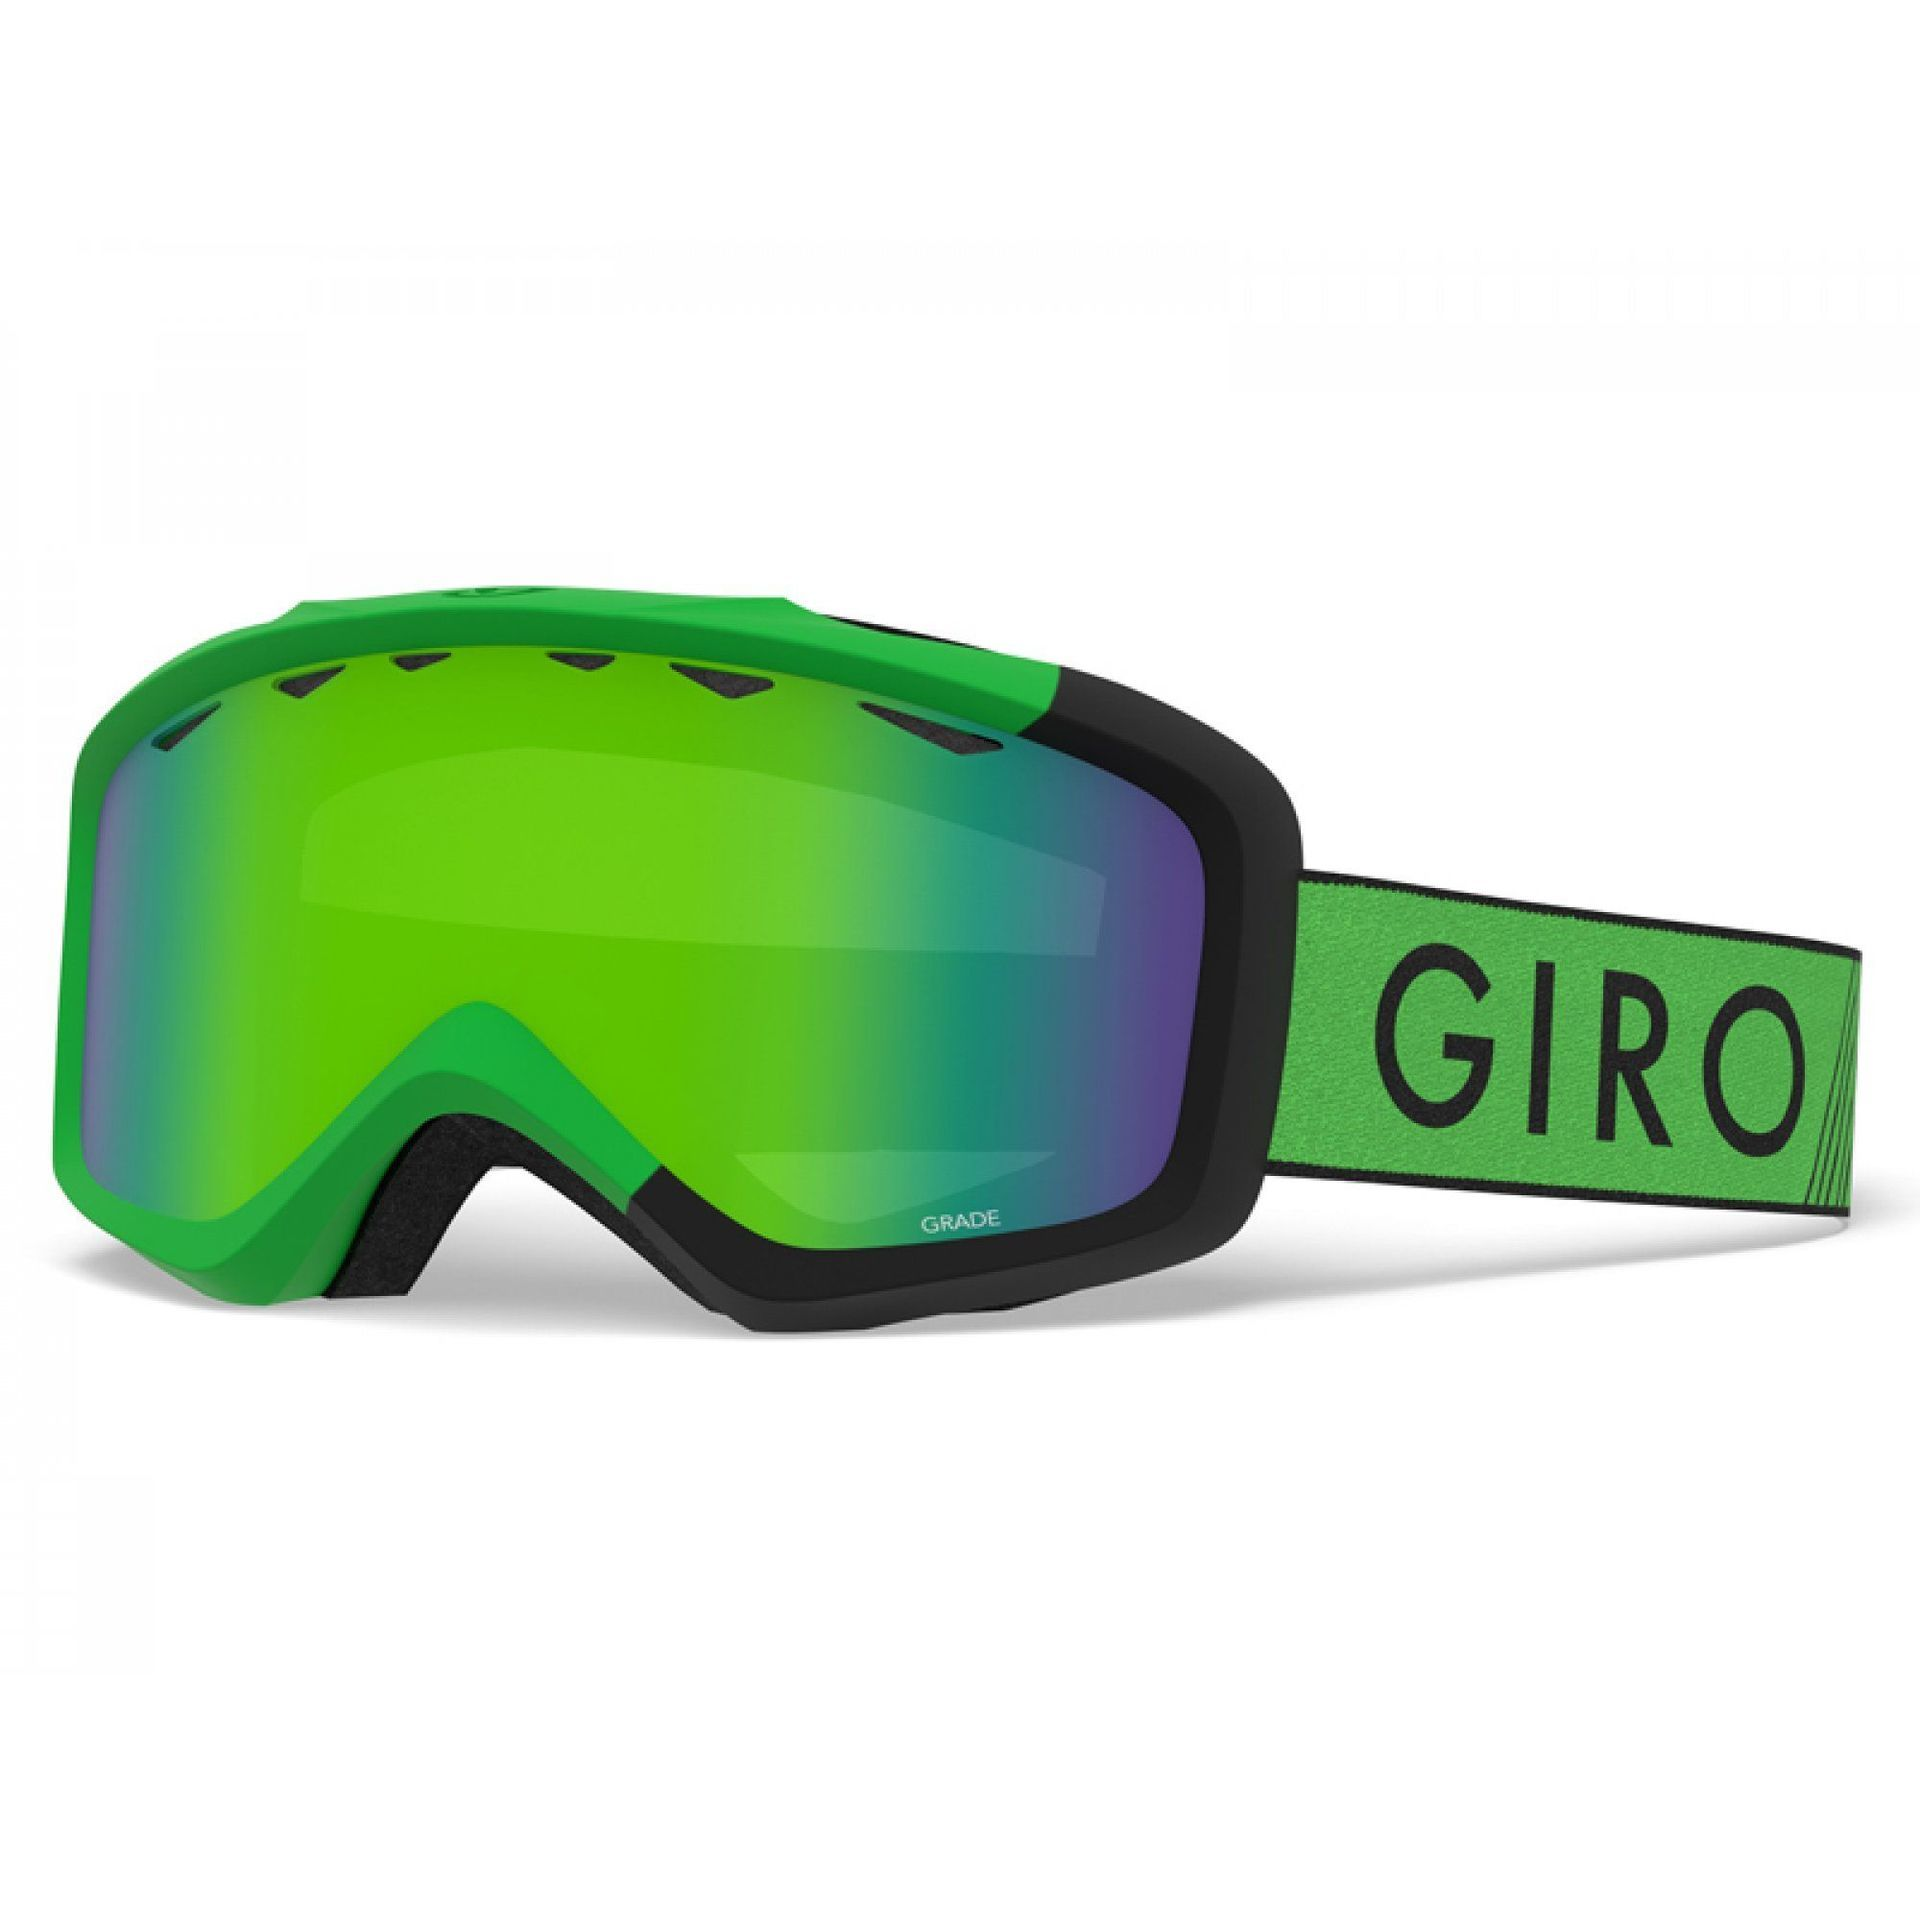 GOGLE GIRO GRADE BRIGHT GREEN BLACK ZOOM|LODEN GREEN 1